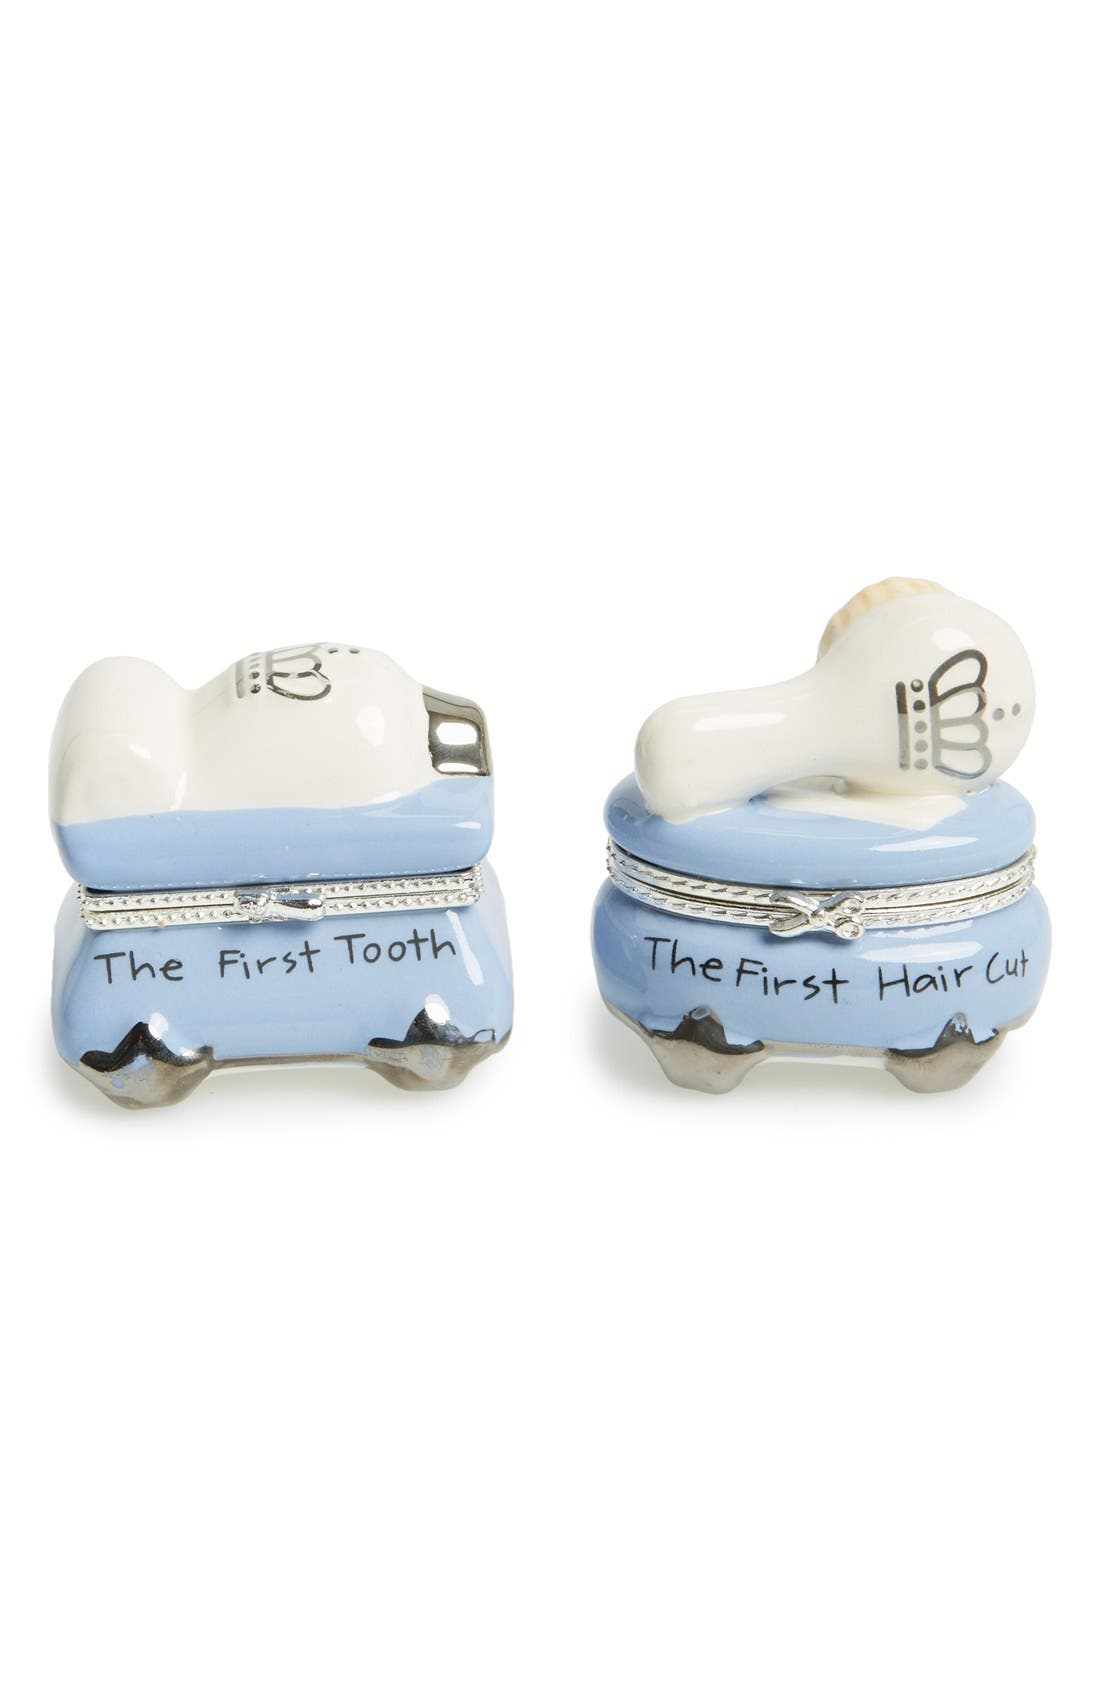 Main Image - Mud Pie 'Prince' First Tooth & Curl Treasure Box Set